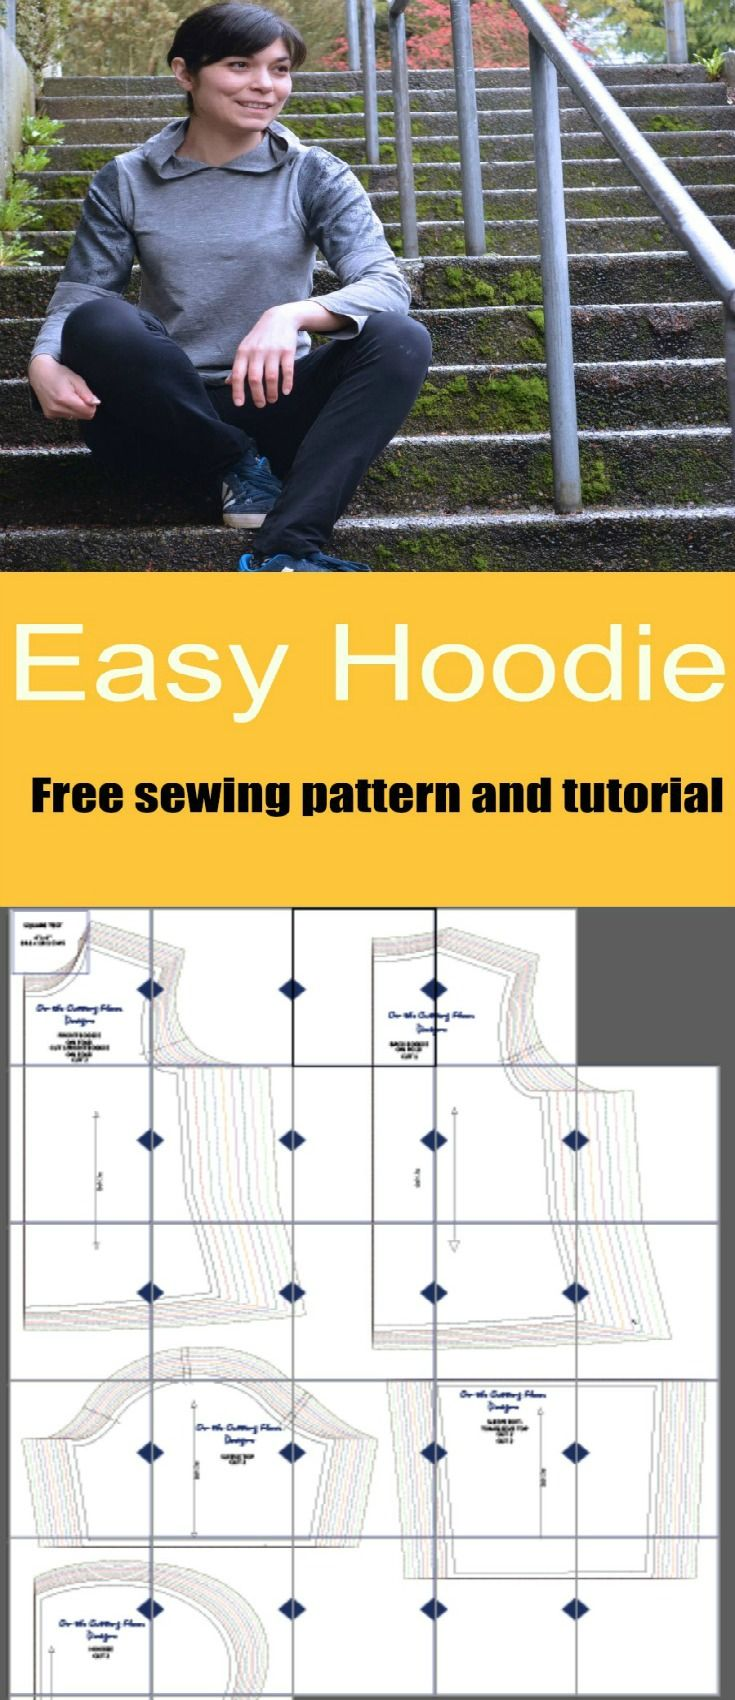 FREE SEWING PATTERN: Make this easy hoodie for the spring season! FREE PDF to download at Onthecuttingfloor.com